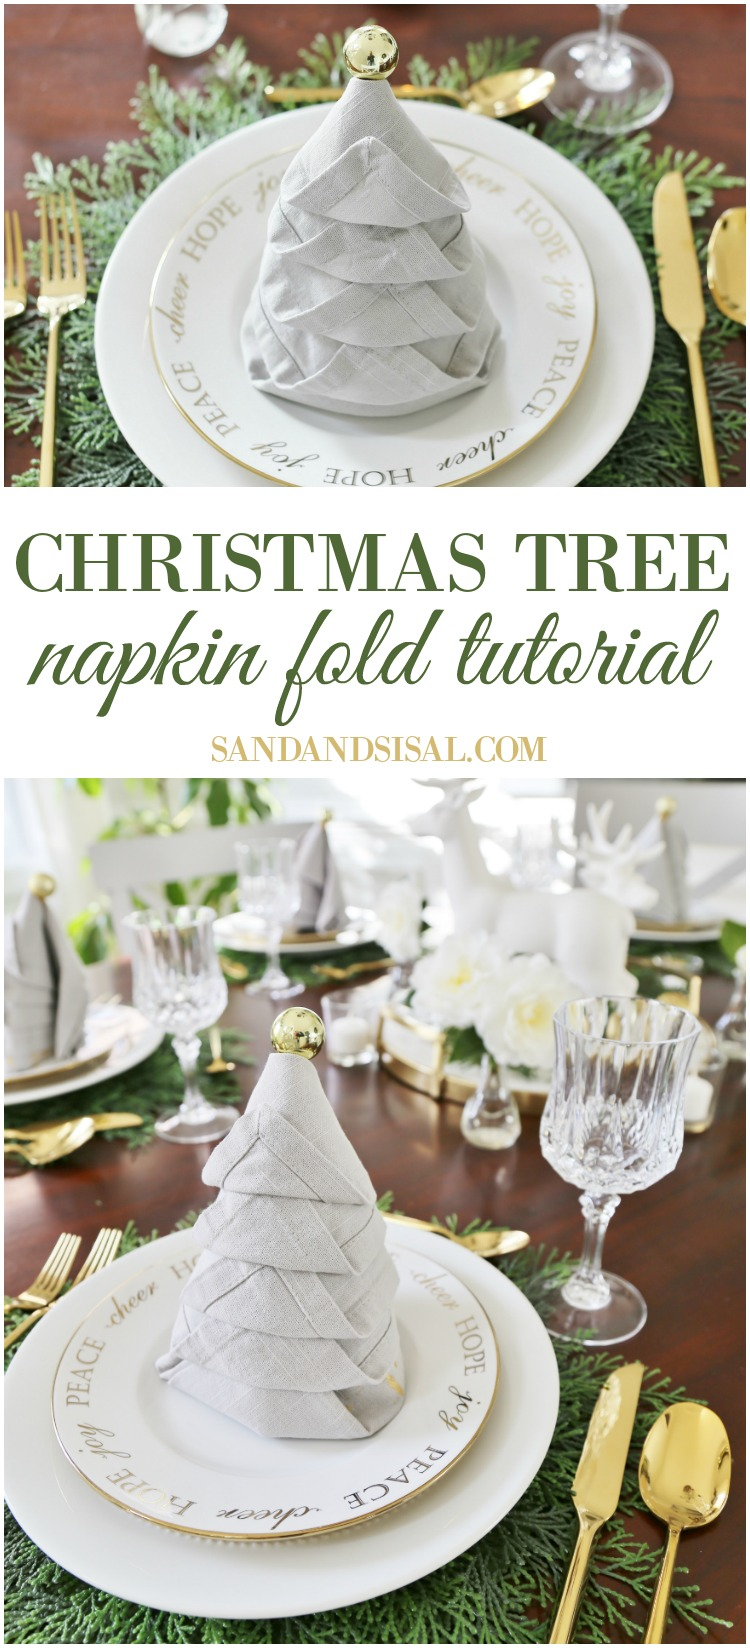 Christmas Tree Napkin Fold Tutorial - Click through the photo to see the video tutorial on how to make these easy holiday napkins for your Christmas tablesetting.